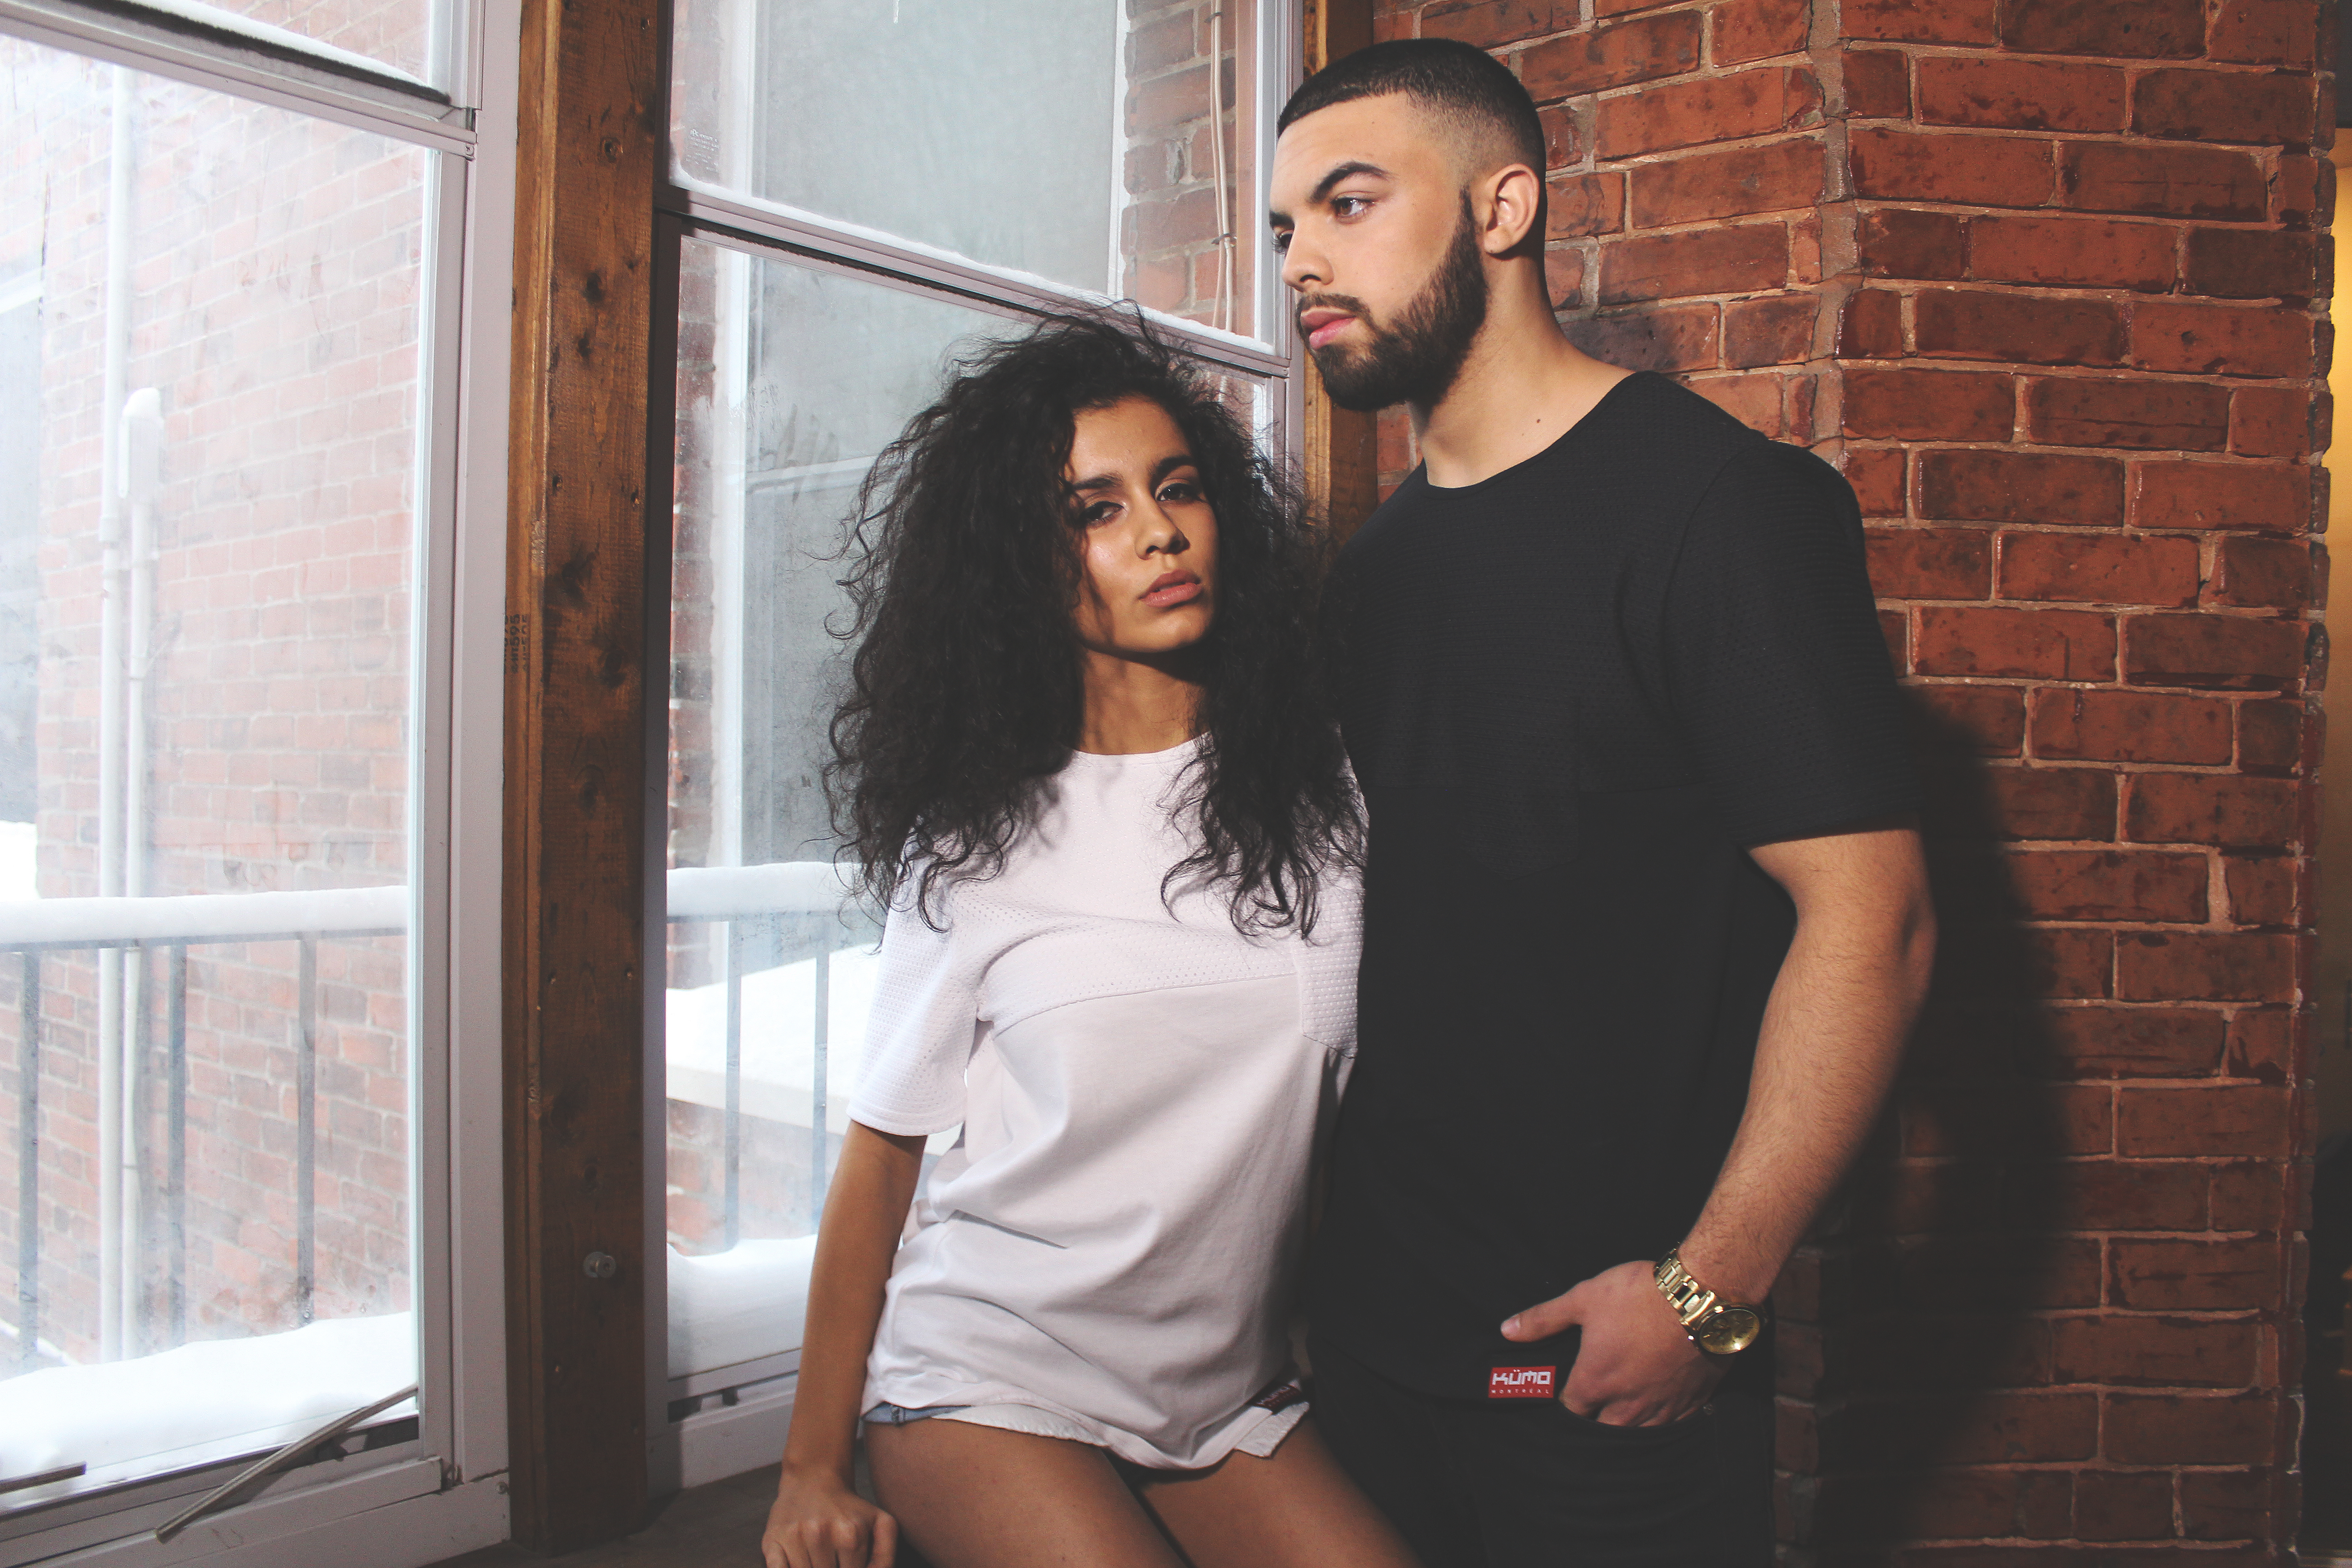 Kumo Montreal aims to highlight local artists and cultural diversity in the city of Montreal with their streetwear designs. Photo courtesy of Kumo Montreal.